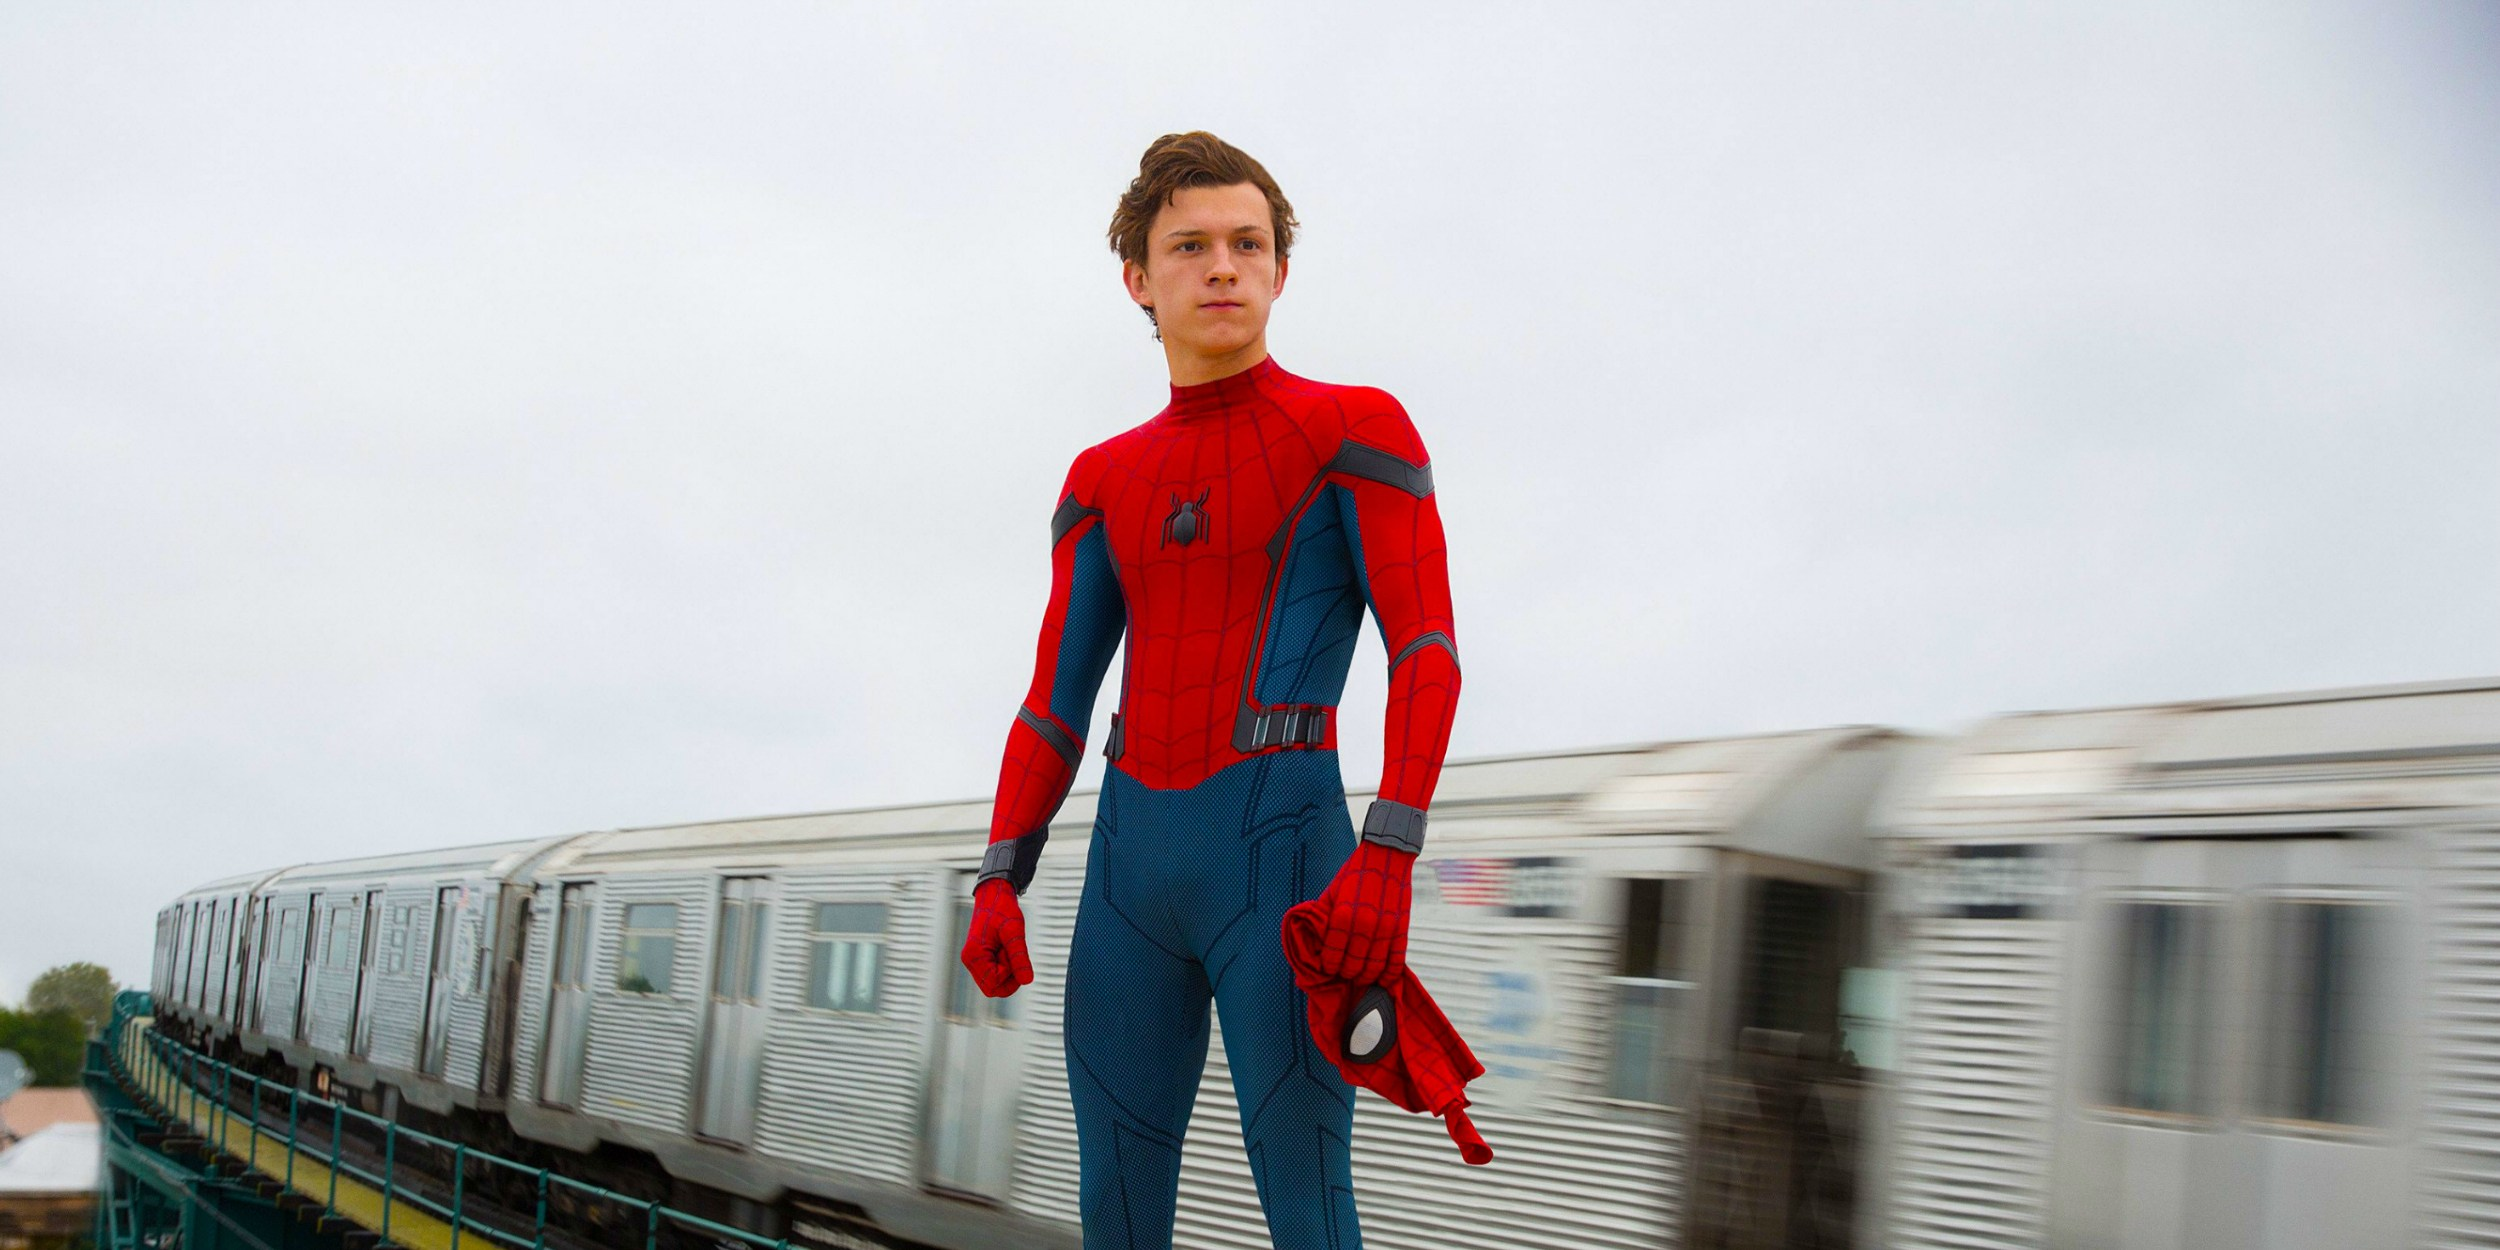 Tom Holland as Peter Parker/Spider-Man in Spider-Man: Homecoming (2017)